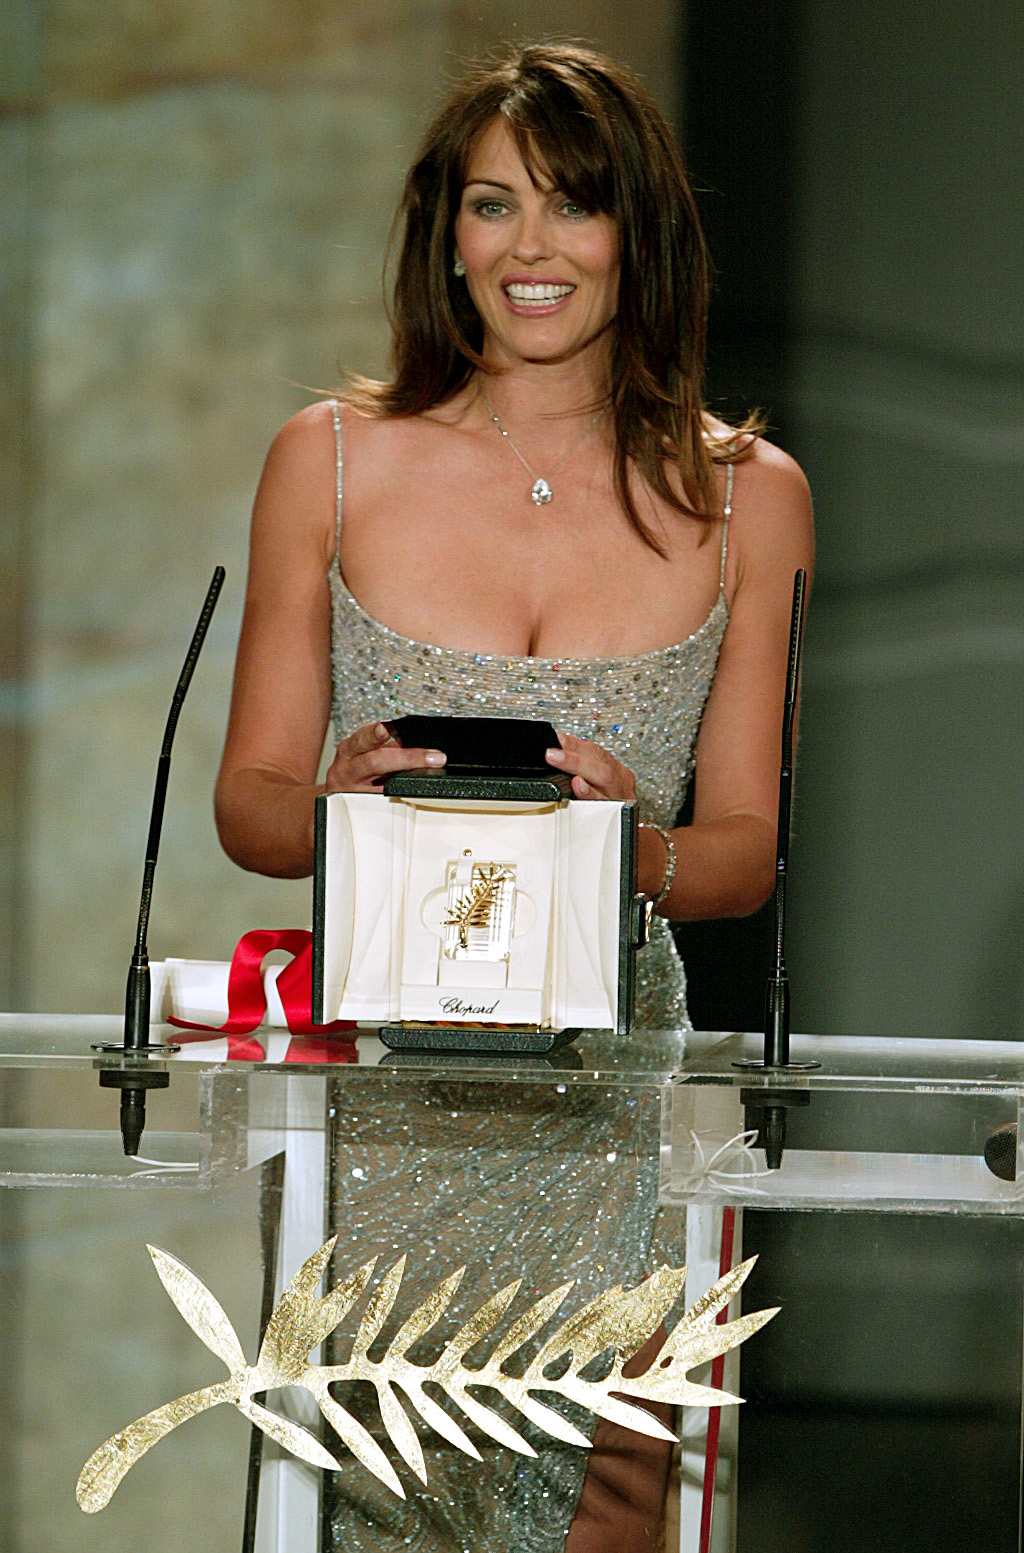 """British actress Elizabeth Hurley smiles during the presentation of the Best Actor award during the closing ceremony at the 56th International Film Festival in Cannes, May 25, 2003. [Turkish actors Muzaffer Ozdemir and Mehmet Emin Toprak, winners for their roles in Turkish director Nuri Bilge Ceylan's film entry """"Uzak"""", were not present at the ceremony.]"""